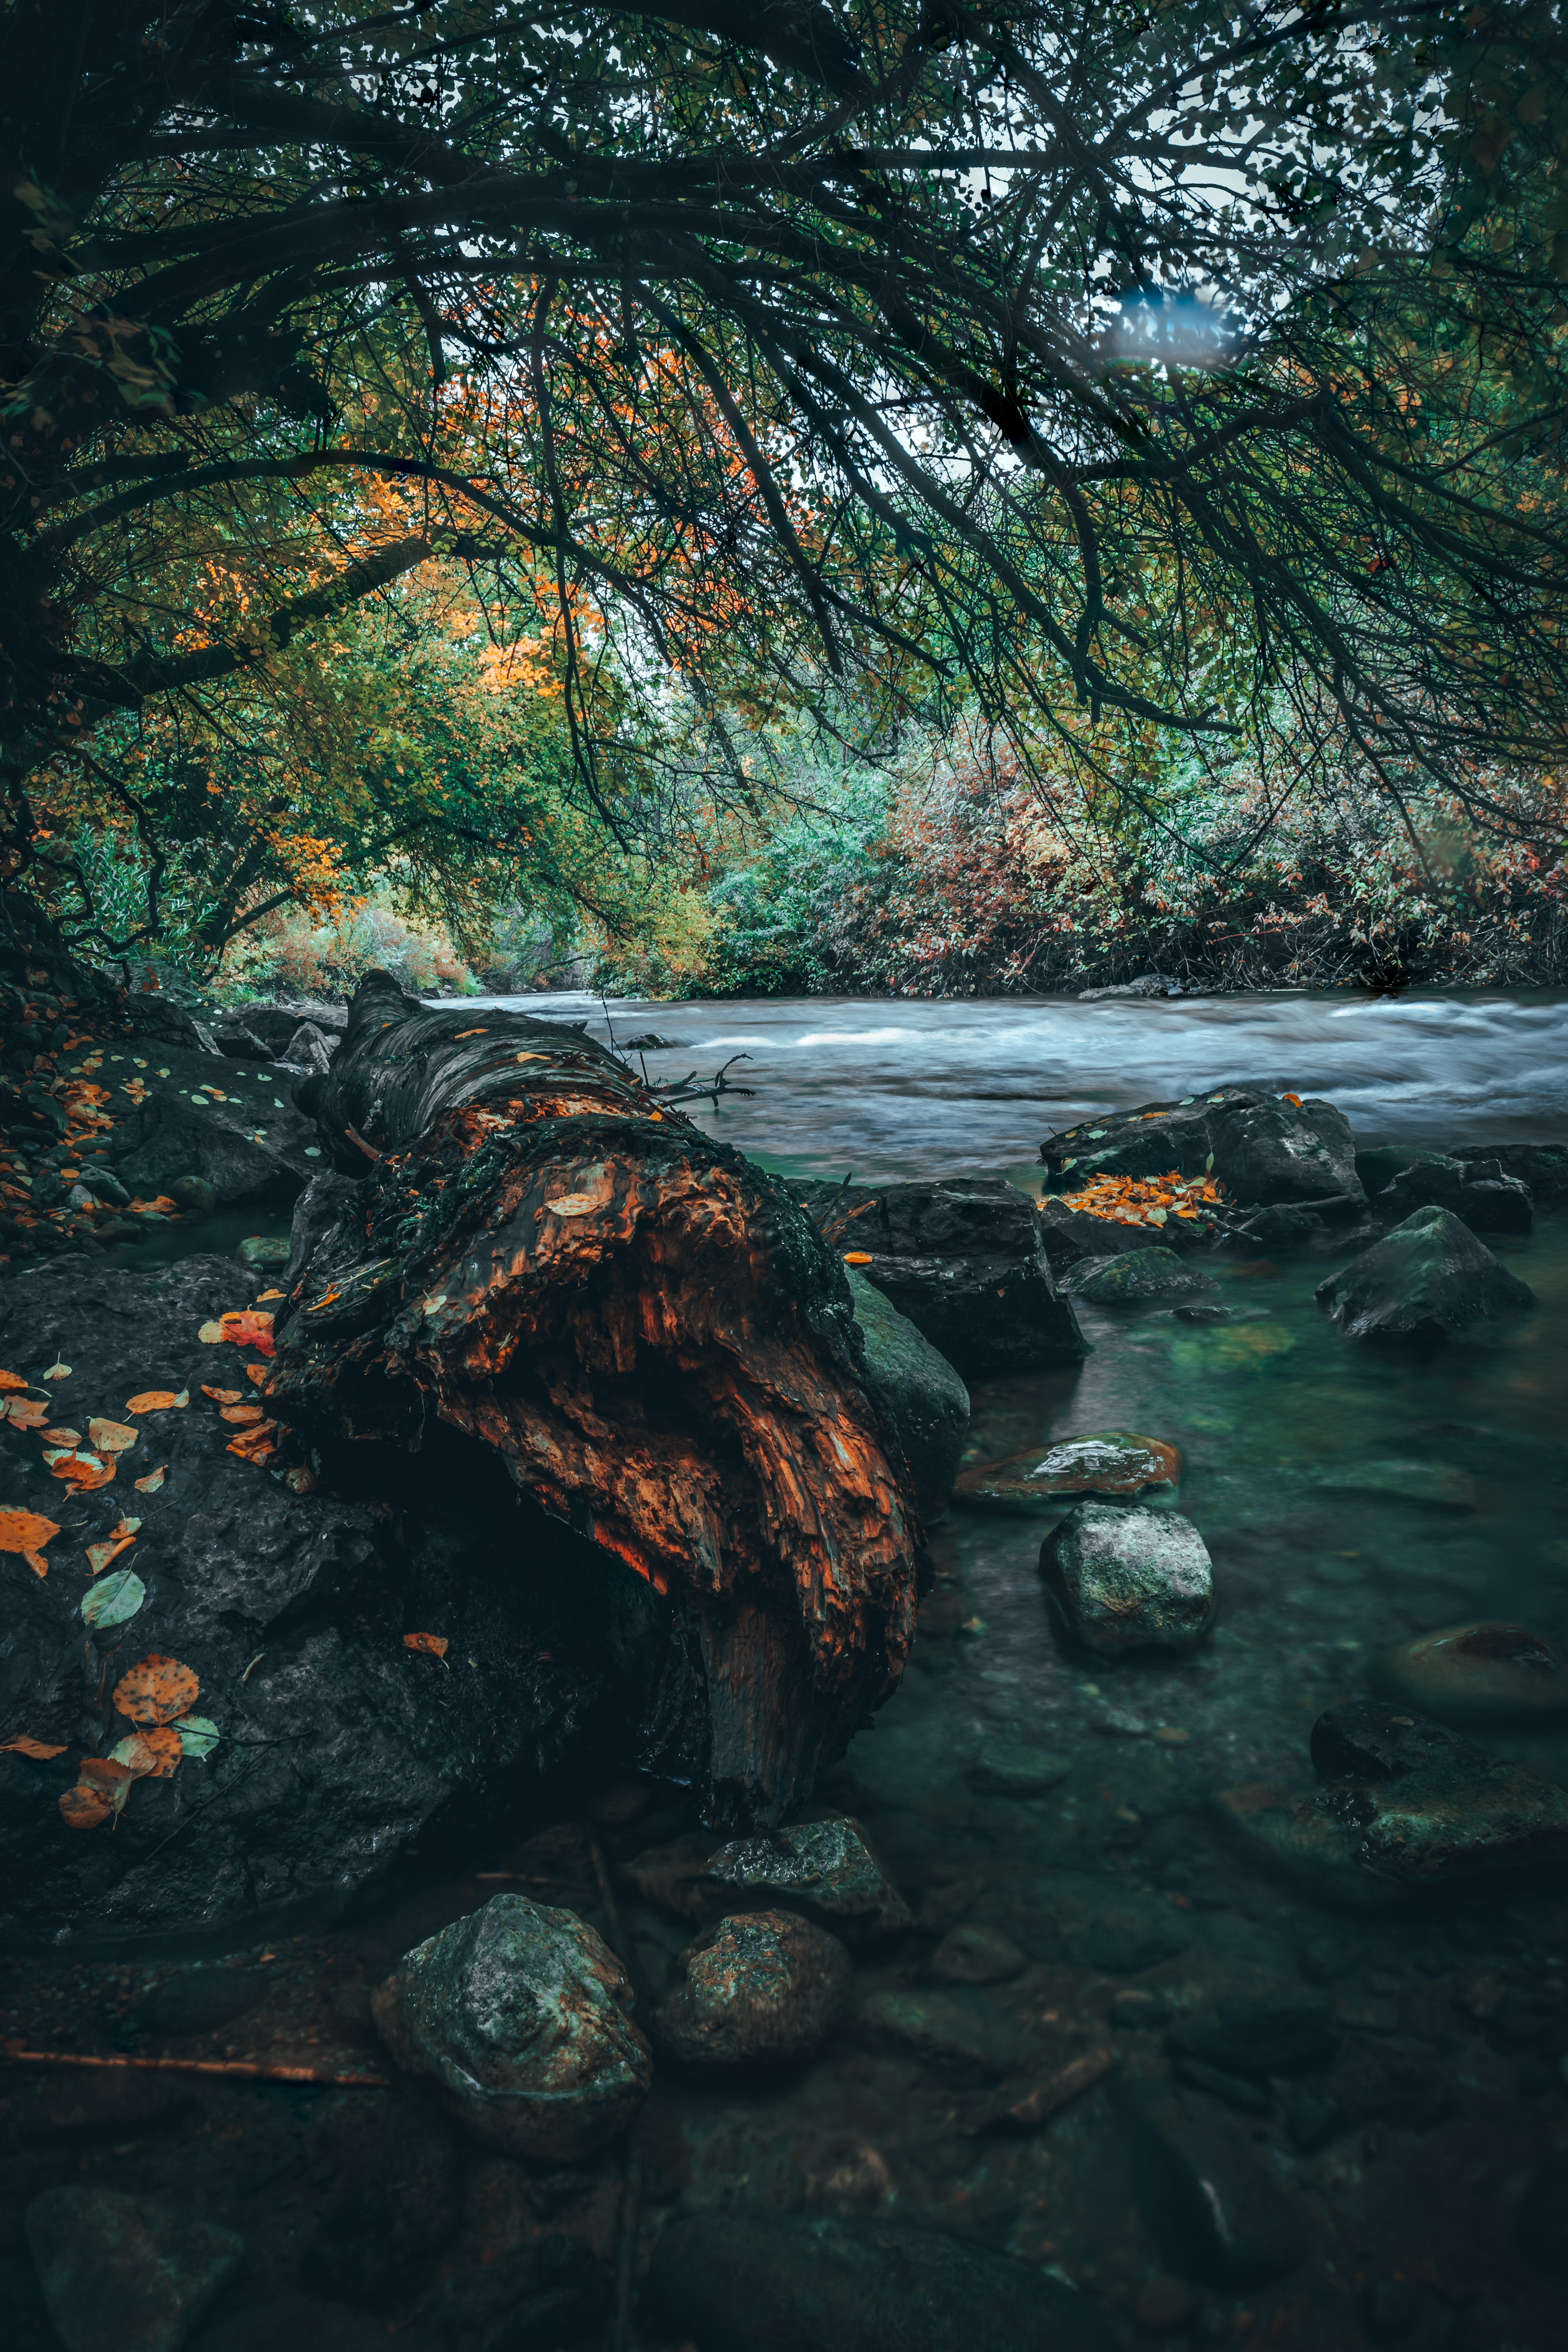 64224 download wallpaper Water, Landscape, Nature, Rivers, Trees, Stones, Shore, Bank screensavers and pictures for free